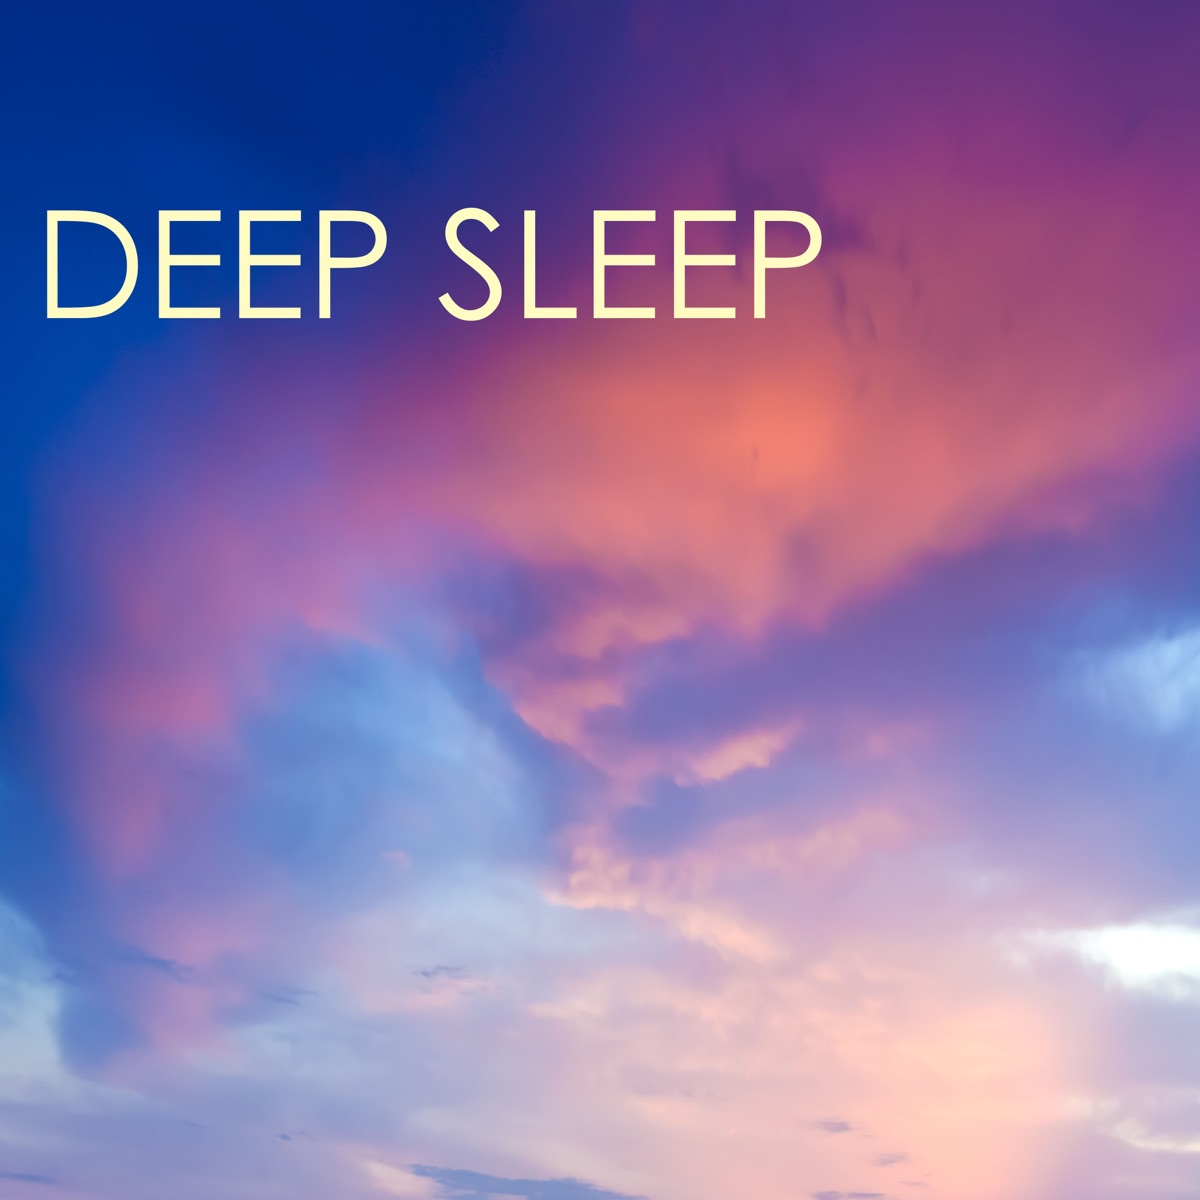 Deep Sleep - Relaxing Music Therapy, Slow Long Sleeping Songs for